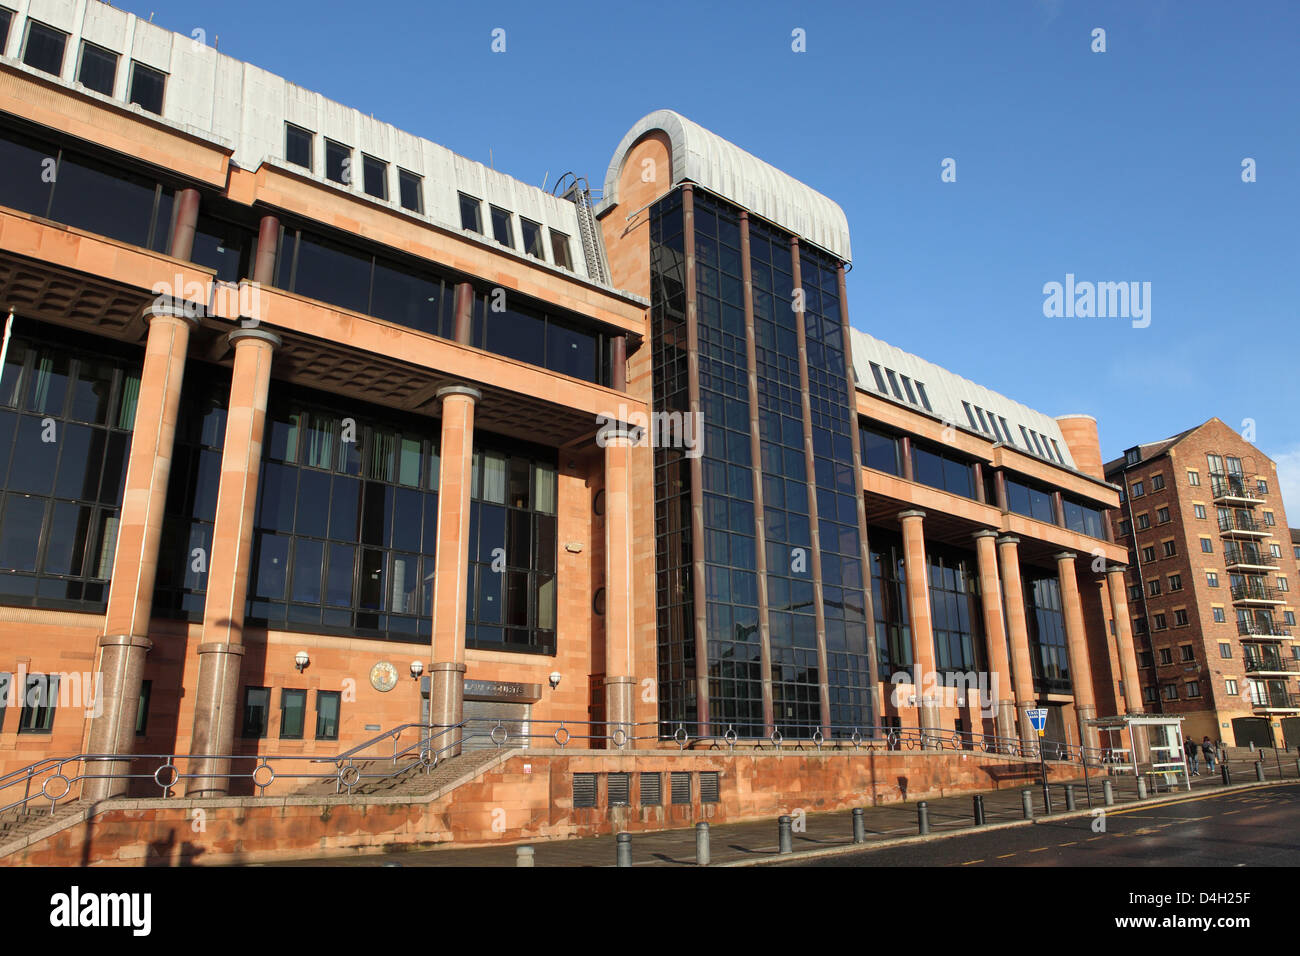 Newcastle Combined Court Centre, Post Modern Classical law courts by Napper Architects, Newcastle, Tyne and Wear, - Stock Image